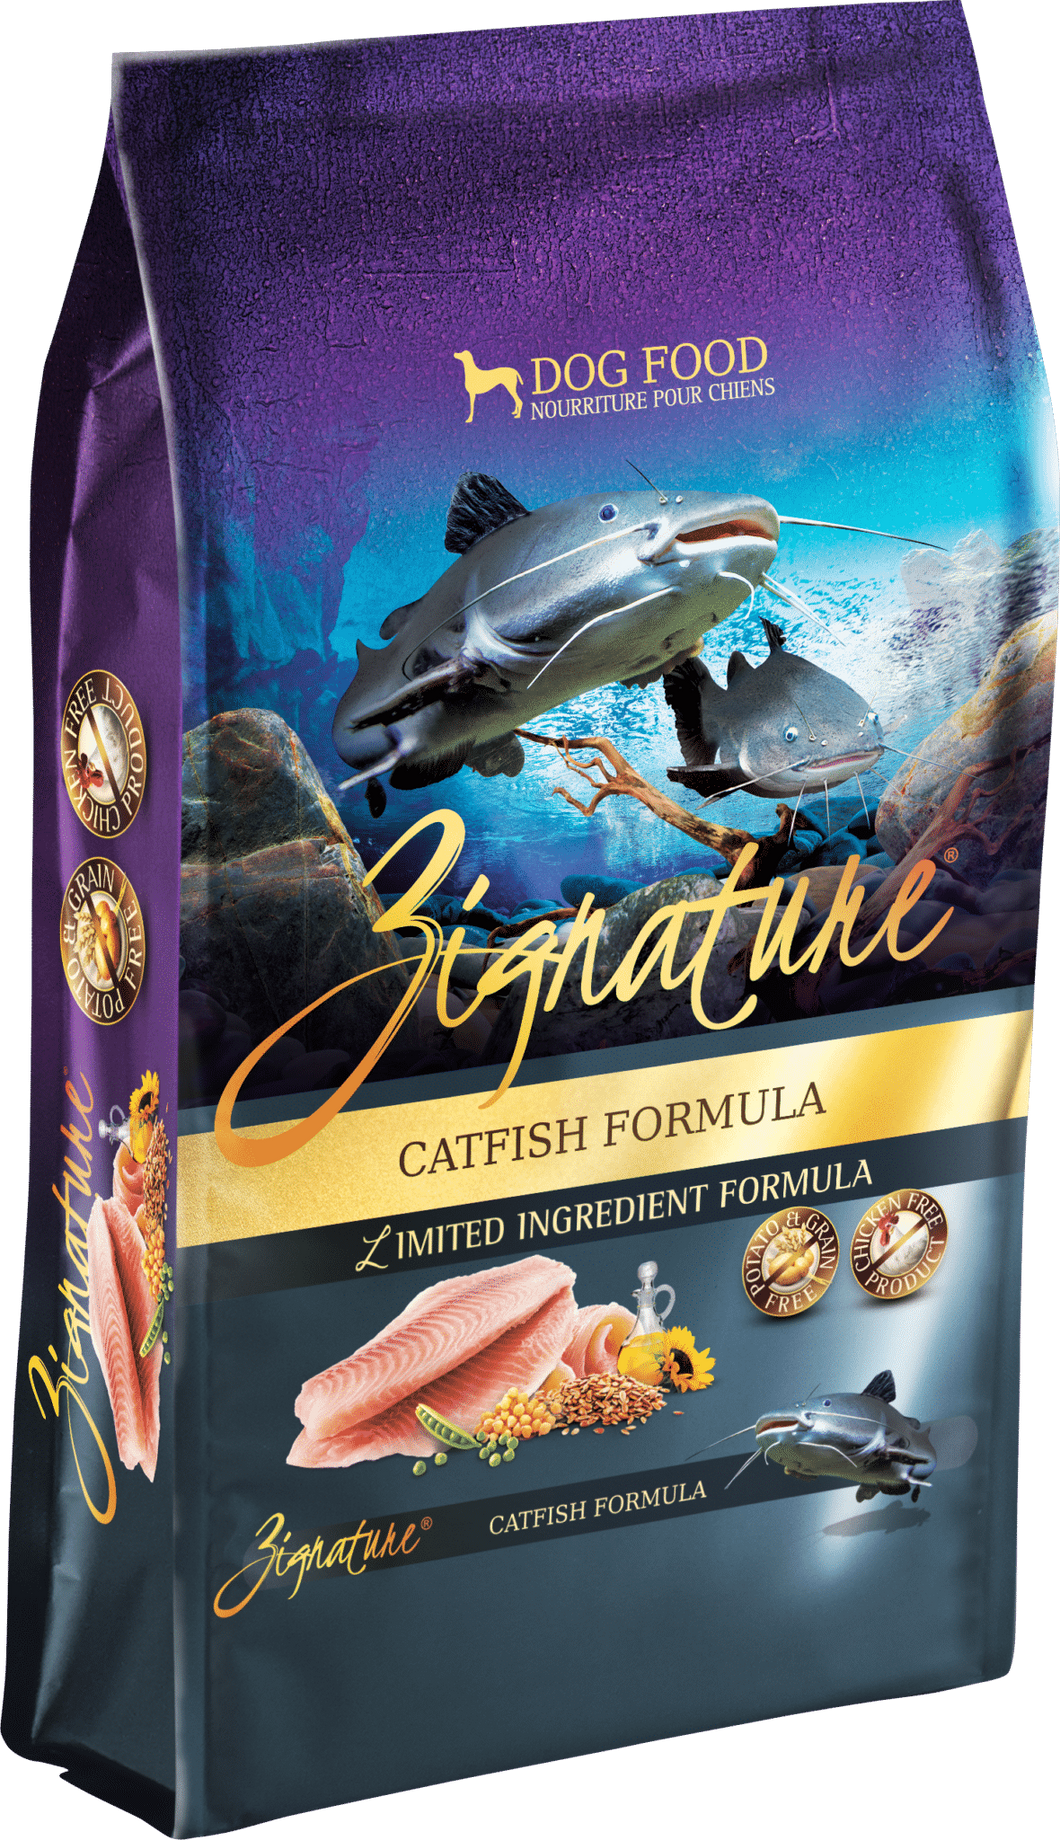 Zignature Catfish Formula 4# Dog